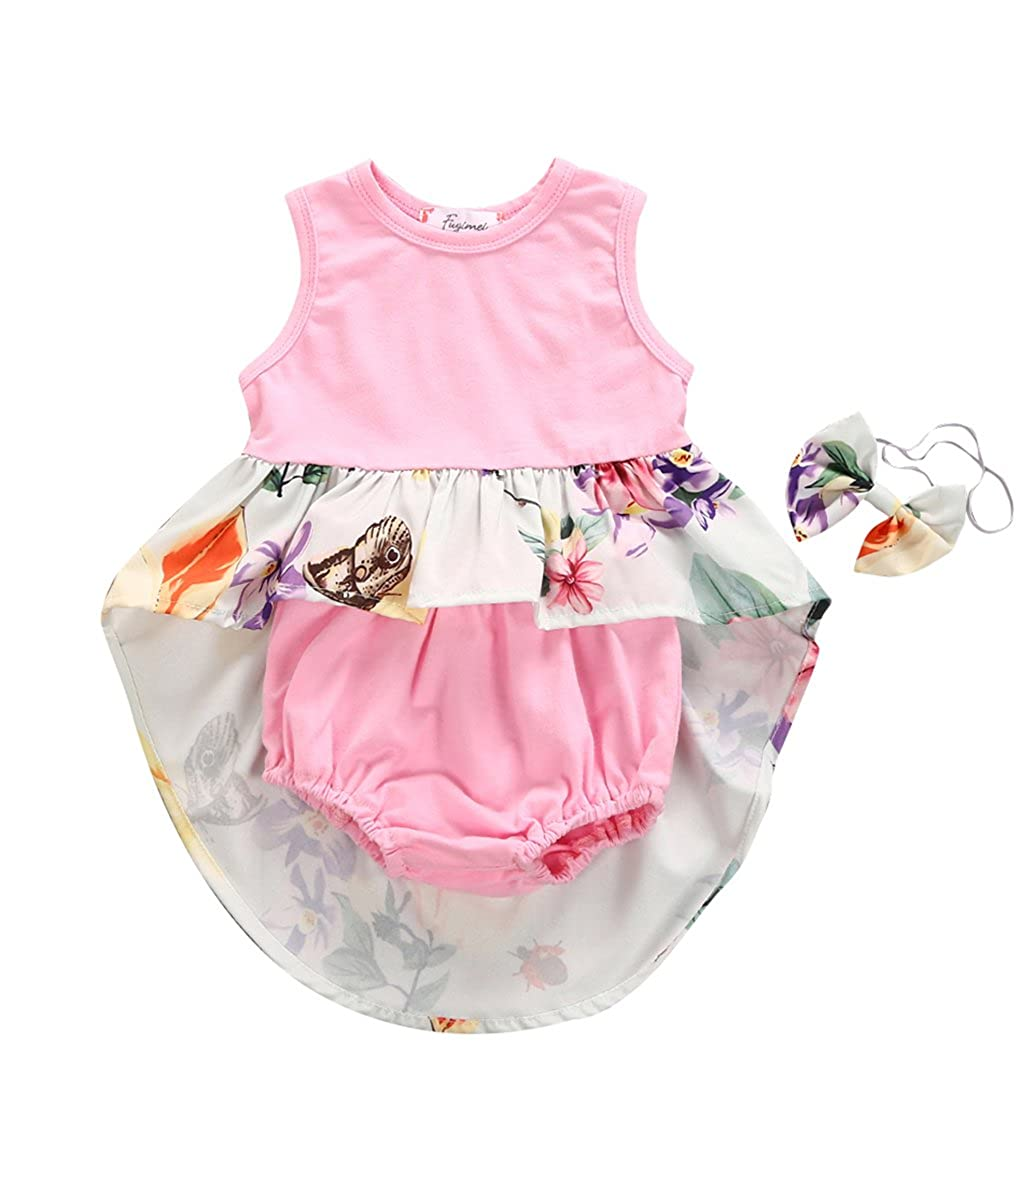 e4e67b4c922 Big Sister Little Sister Floral Matching Clothing Lace Ruffle Sleeve  Romper  Dress Outfit Family Clothing